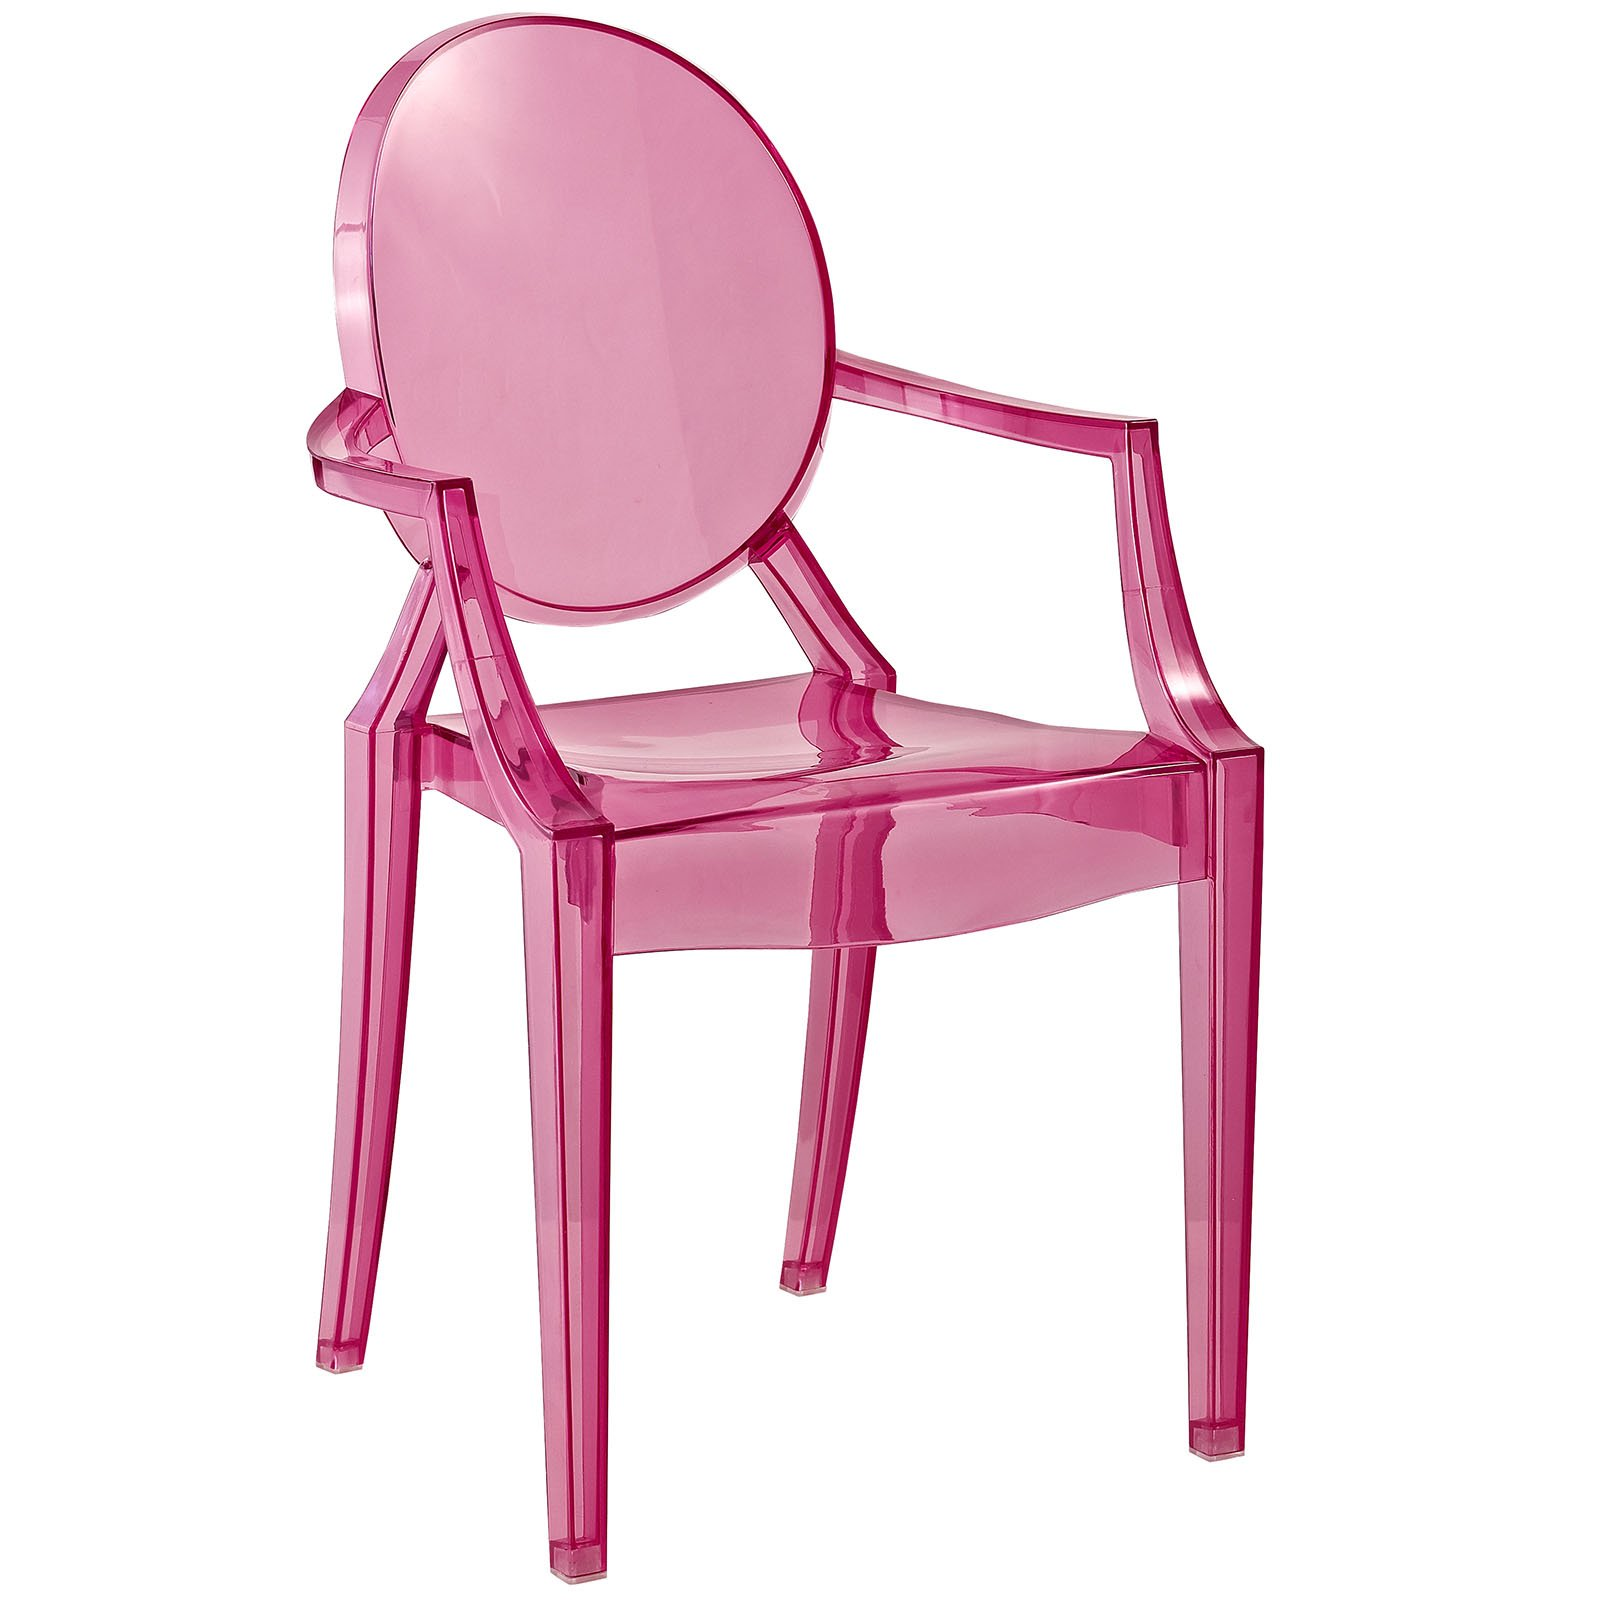 Modway Casper Kids Chair in Pink